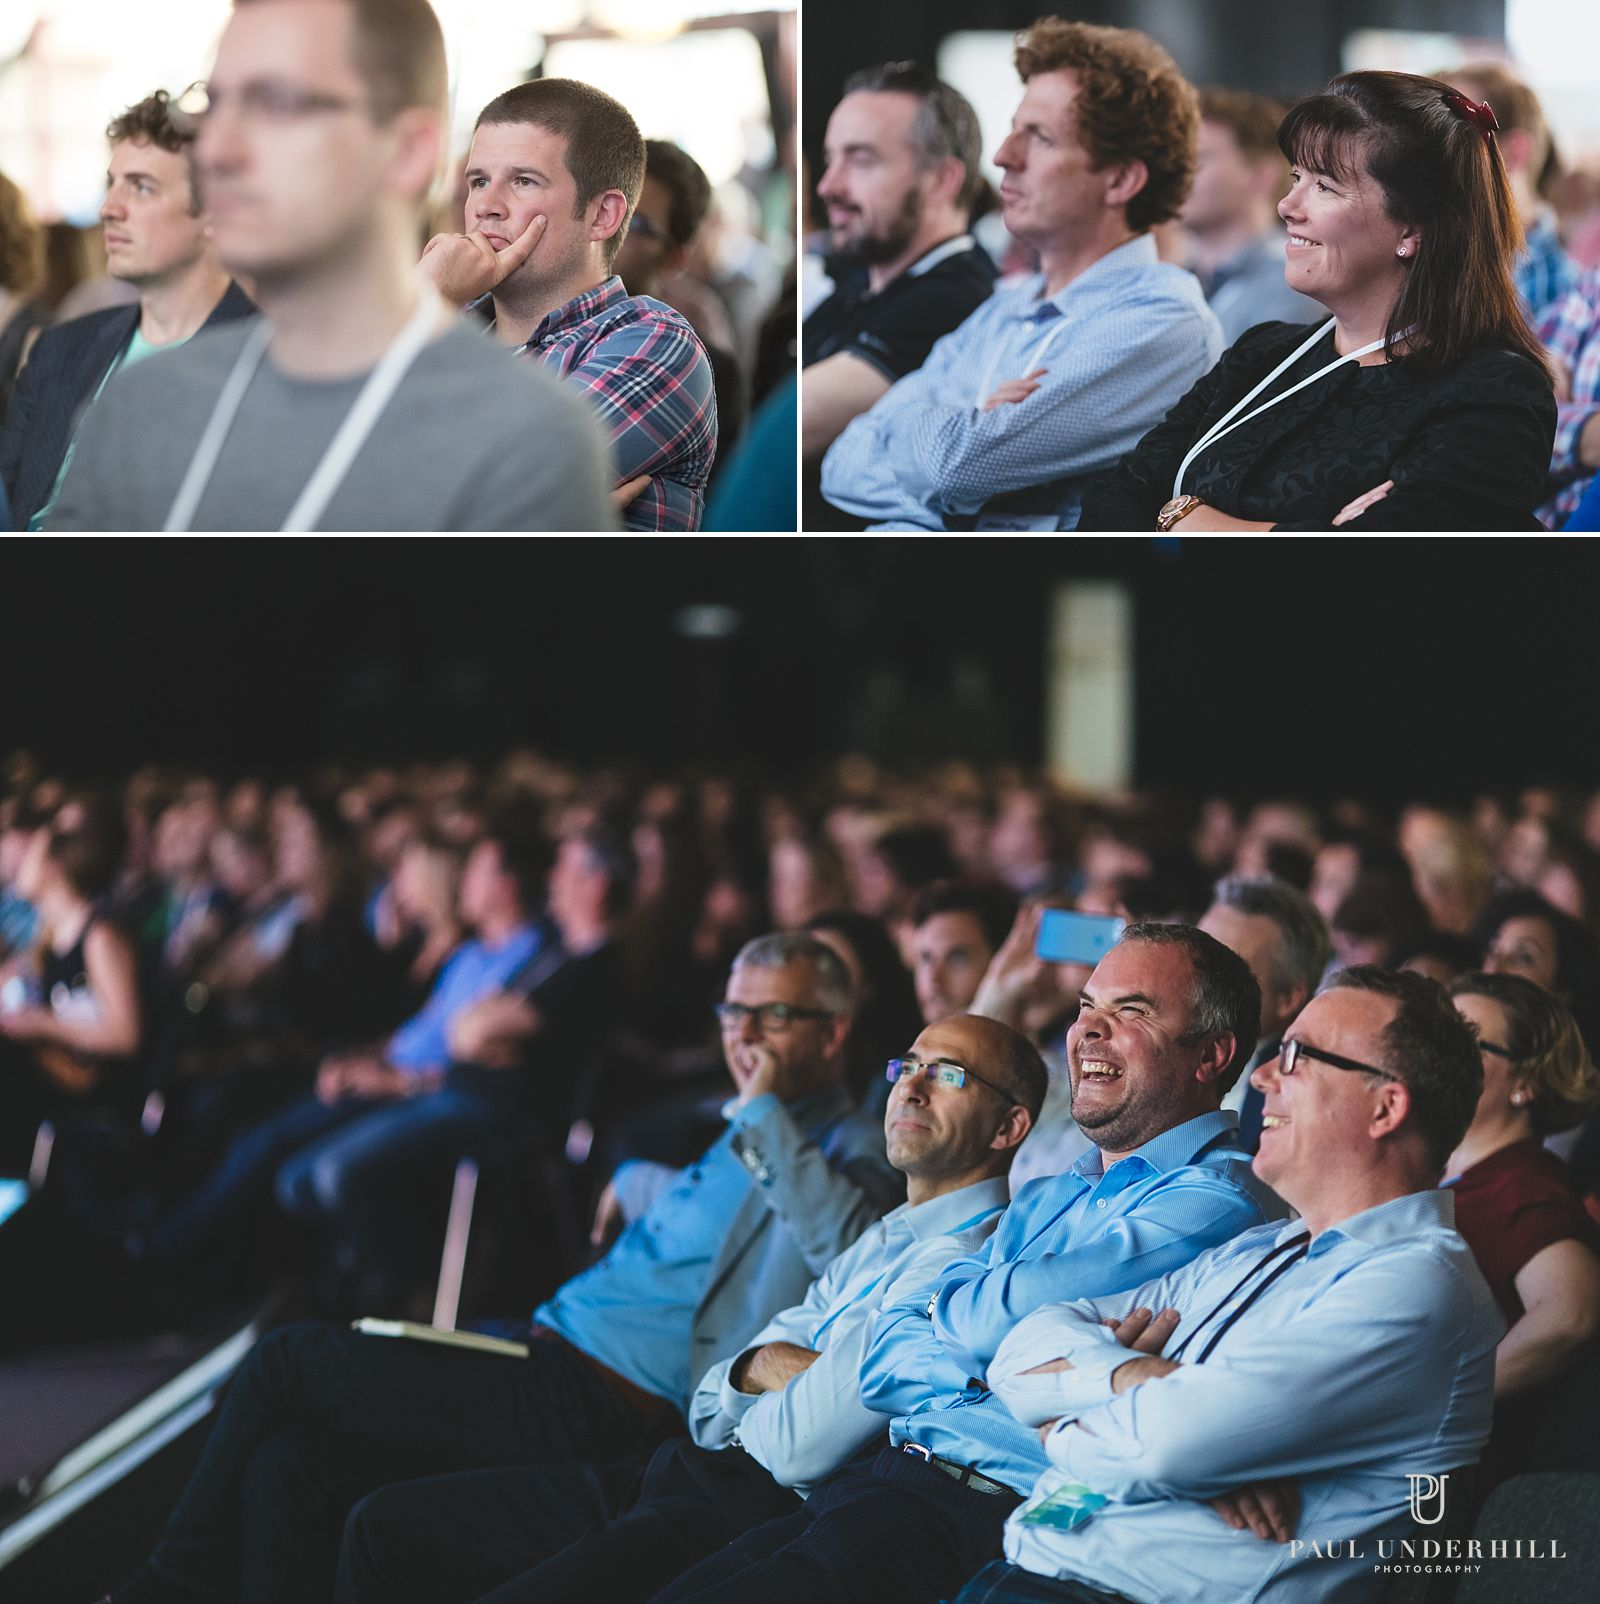 Lifestyle photography of conference